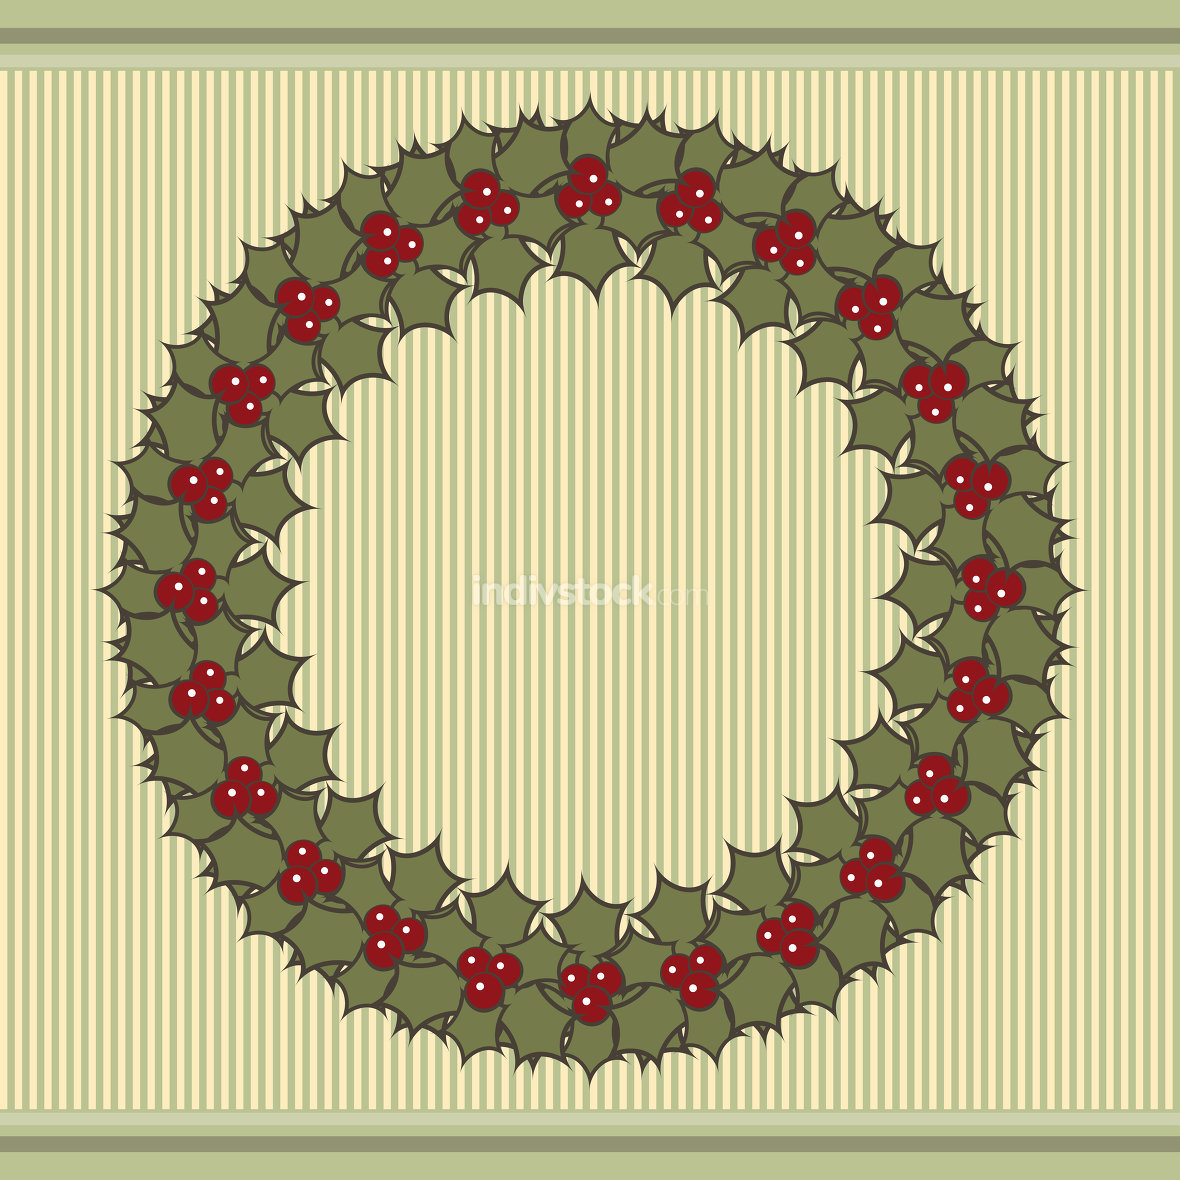 Retro Christmas background with a wreath of holly.